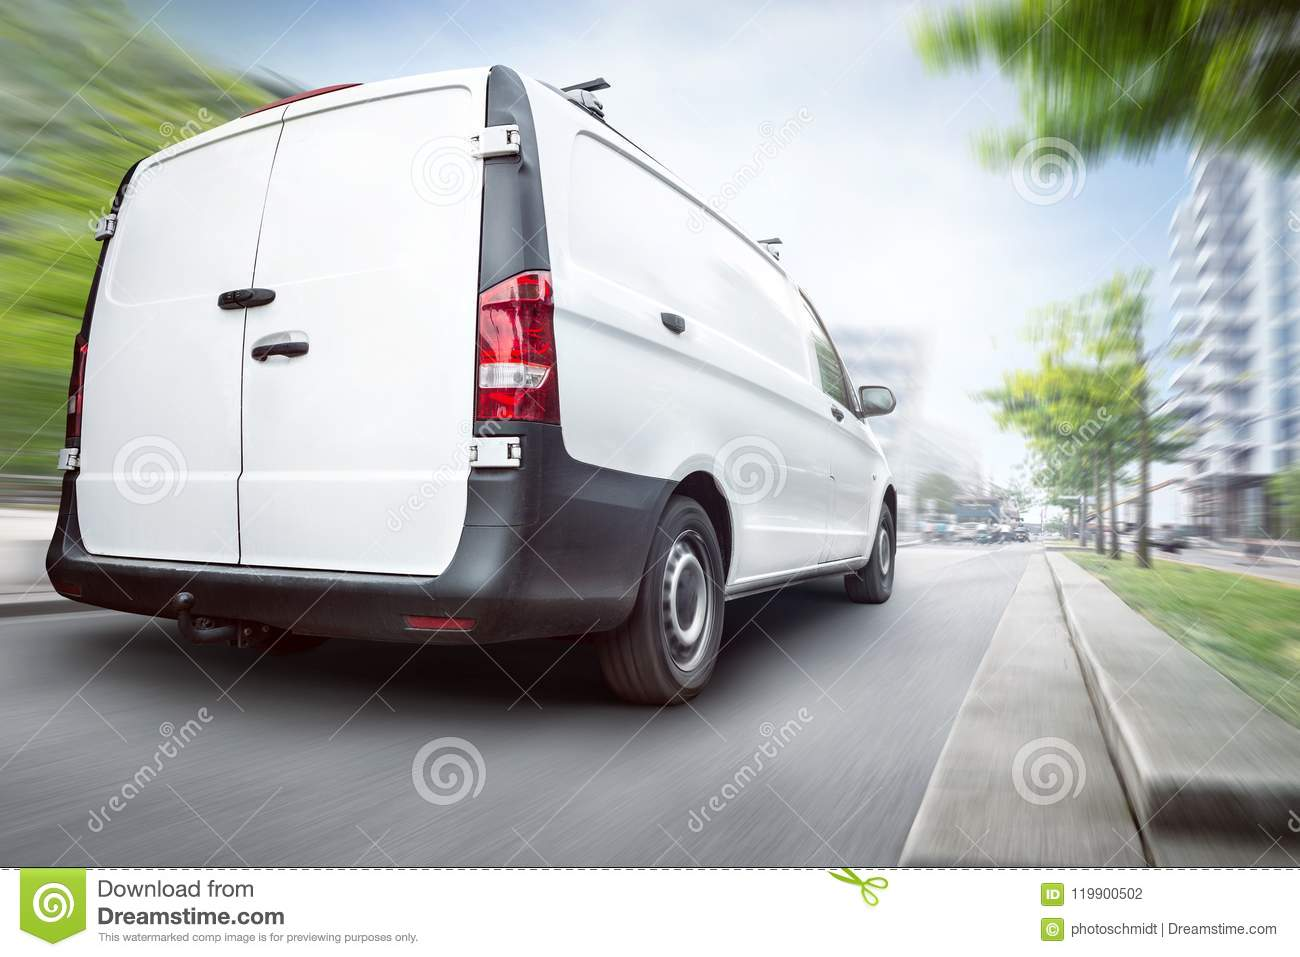 Commercial van driving in the city